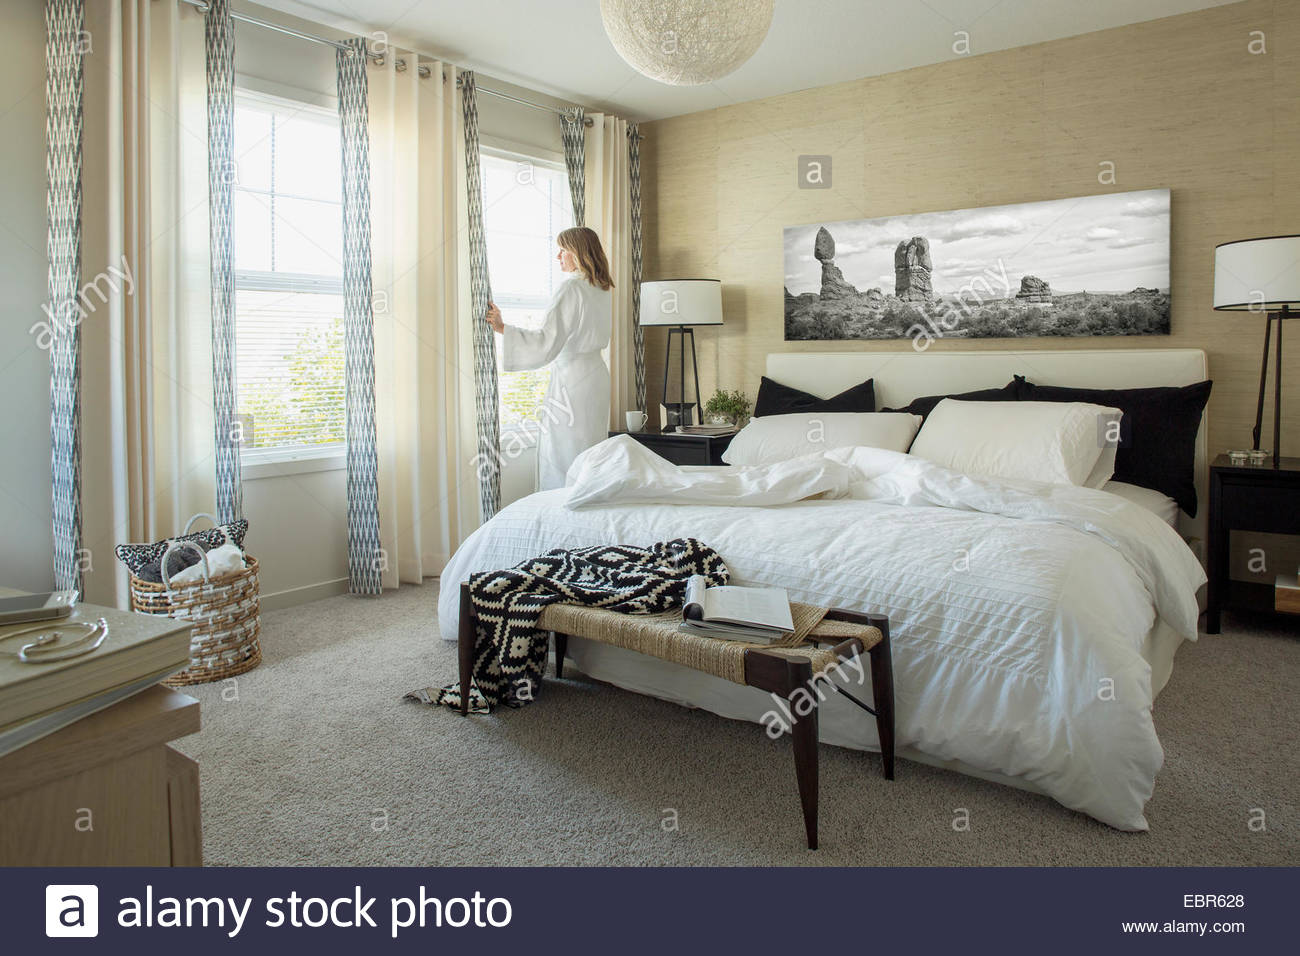 Woman in bathrobe at bedroom window - Stock Image